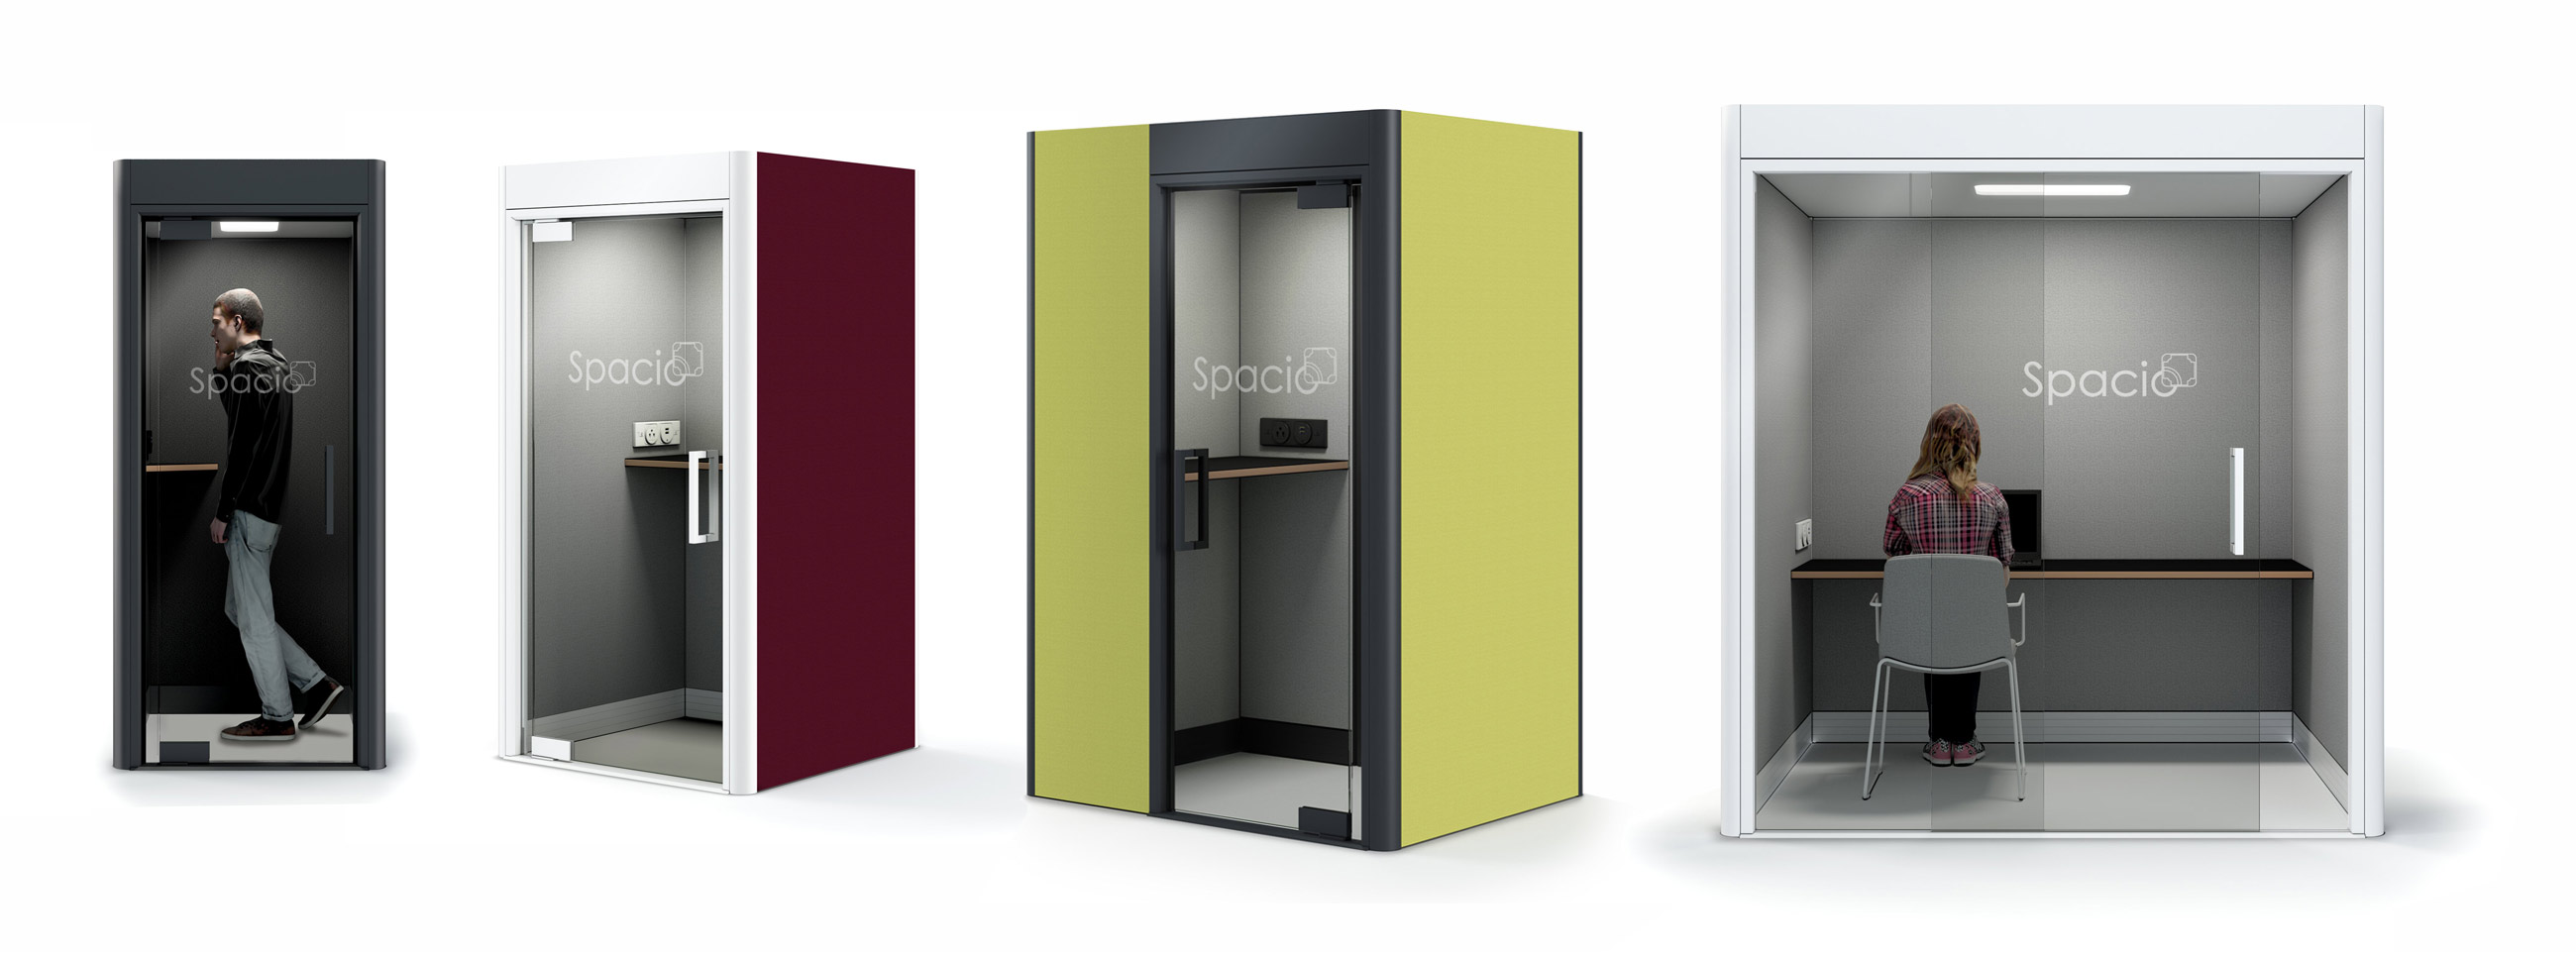 Spacio Booths & Pods